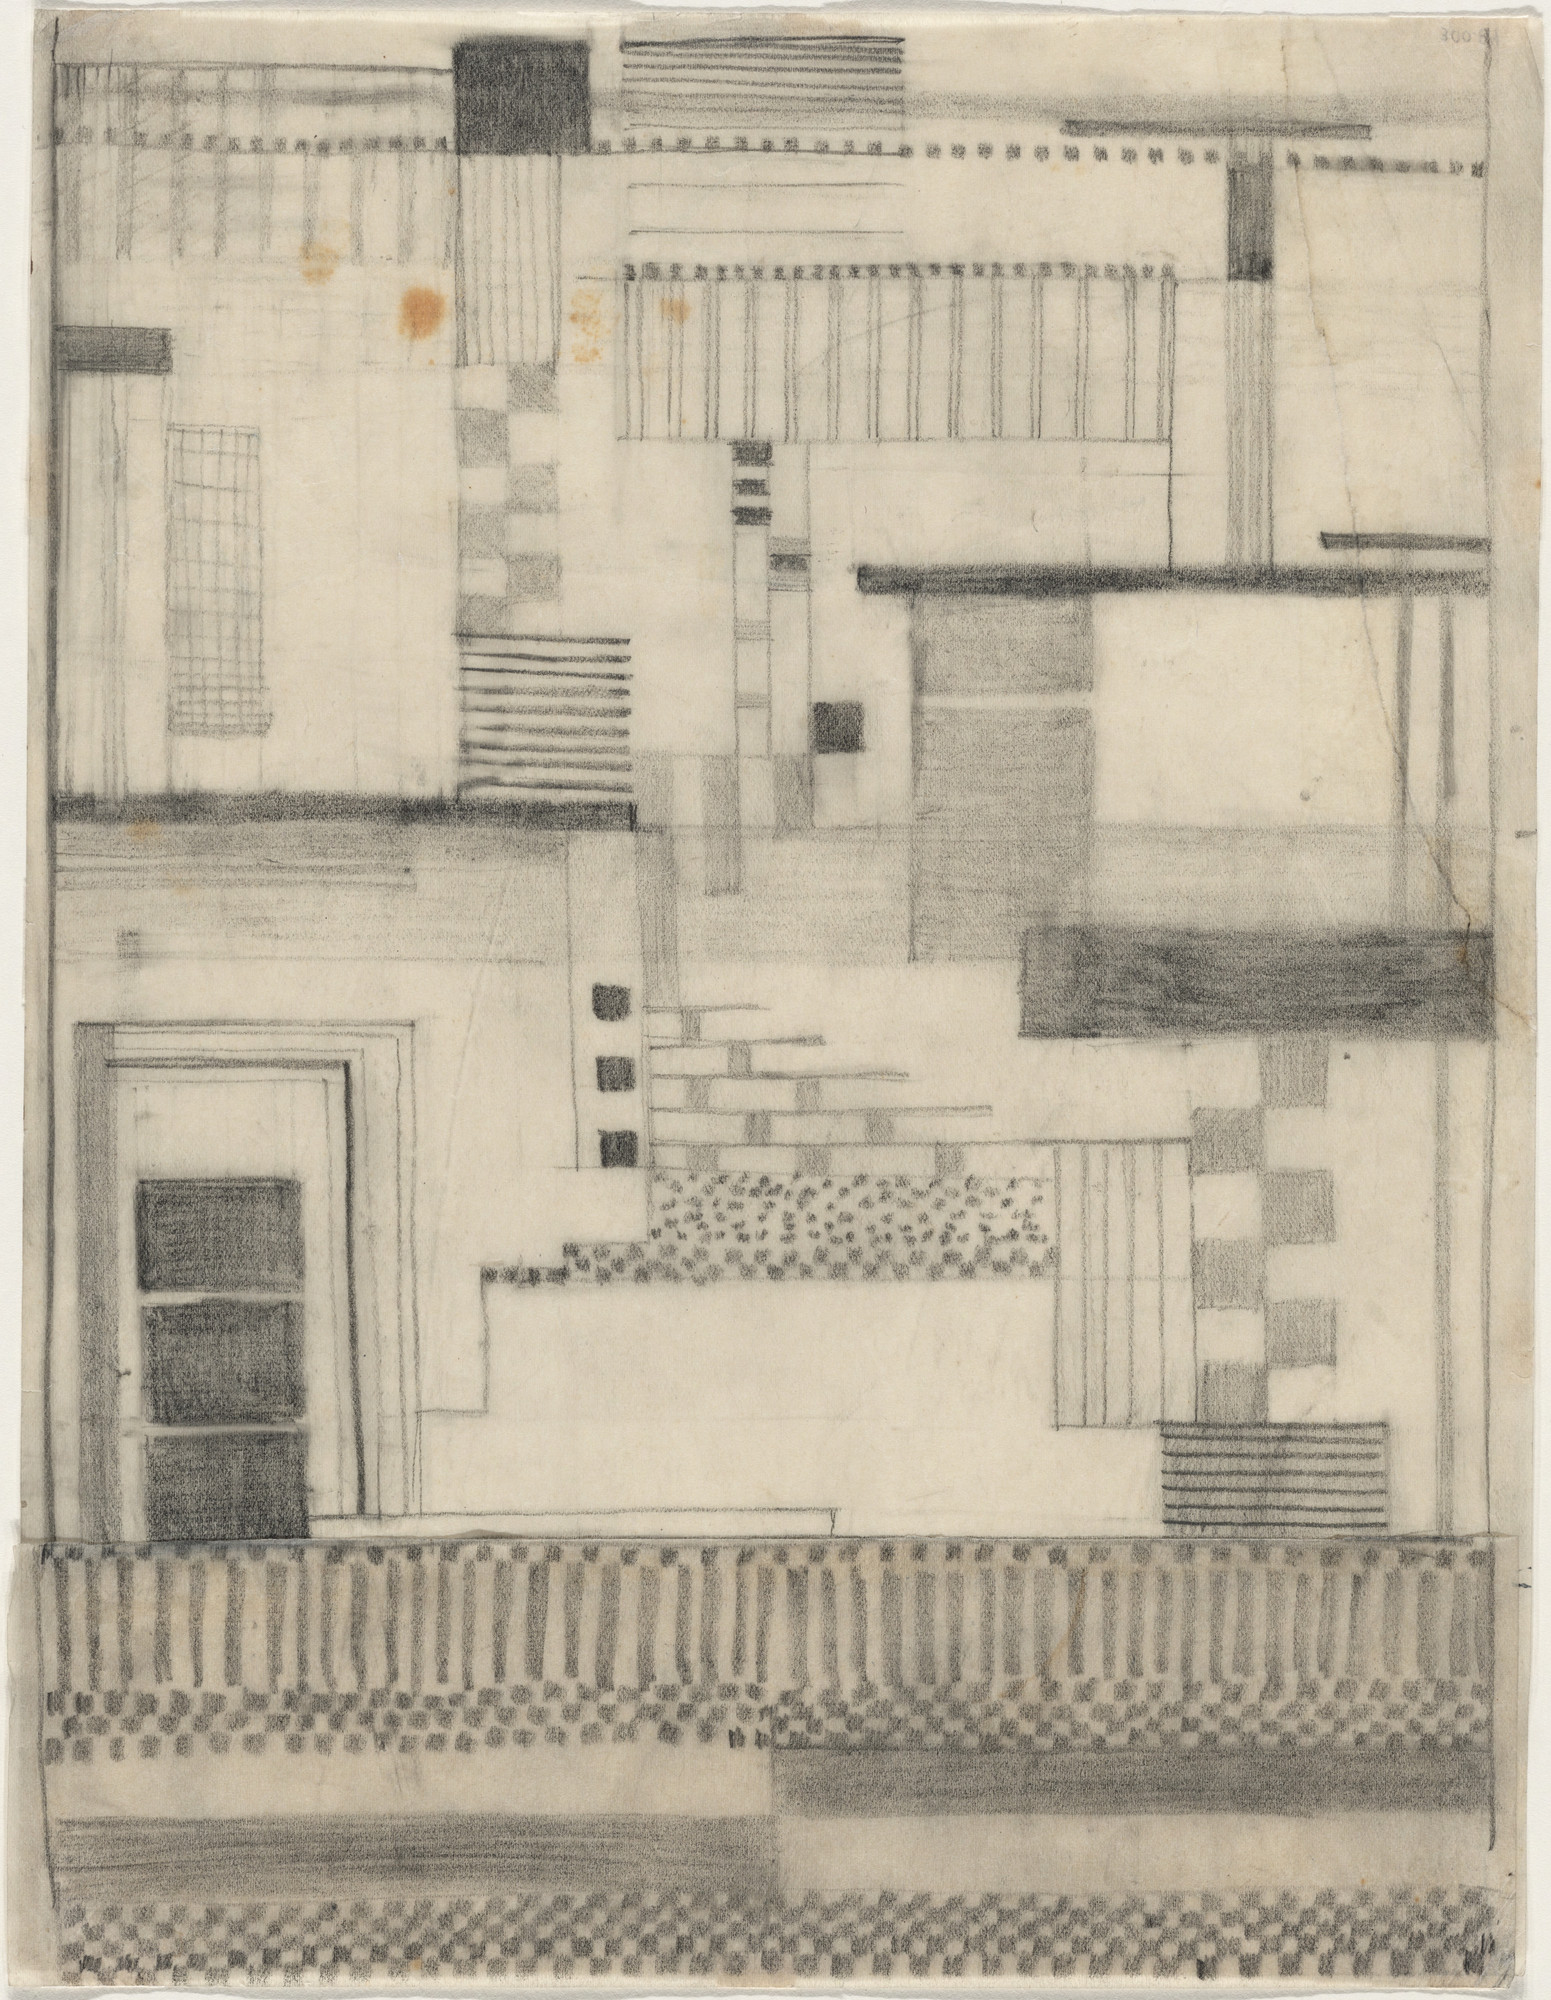 Gunta Stölzl. Working Drawing for Wall Hanging. c. 1924